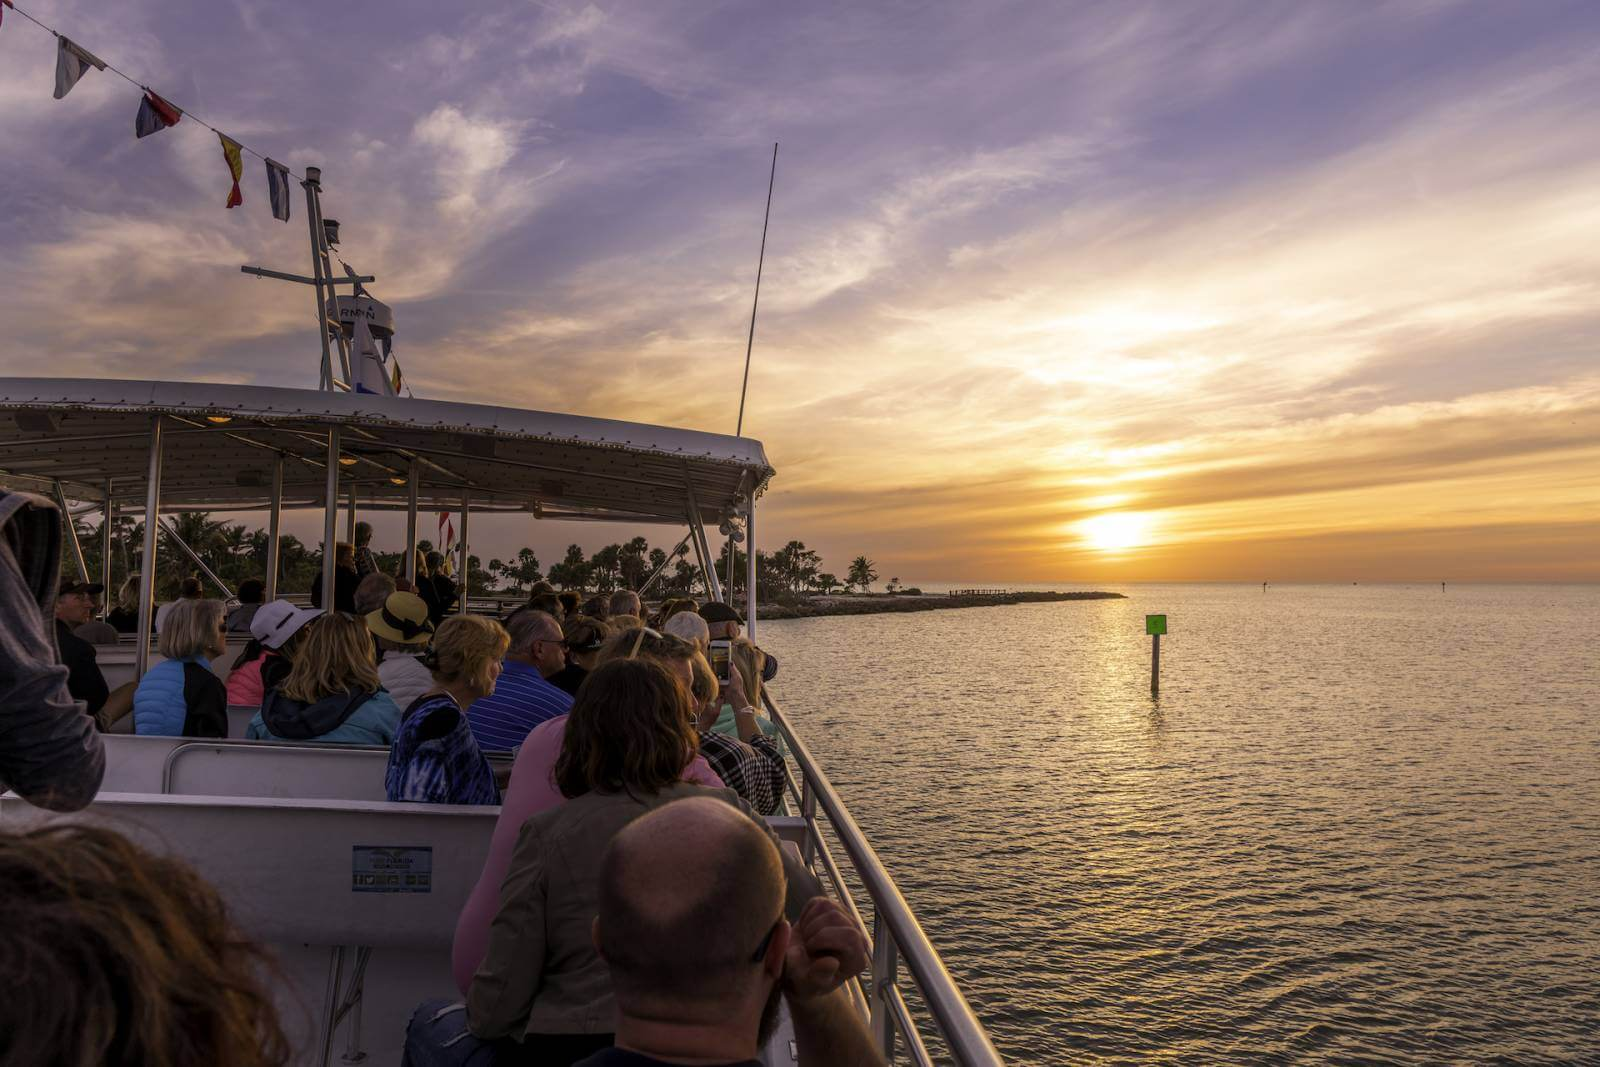 Sunset sightseeing cruise Pure Florida Naples, Florida.